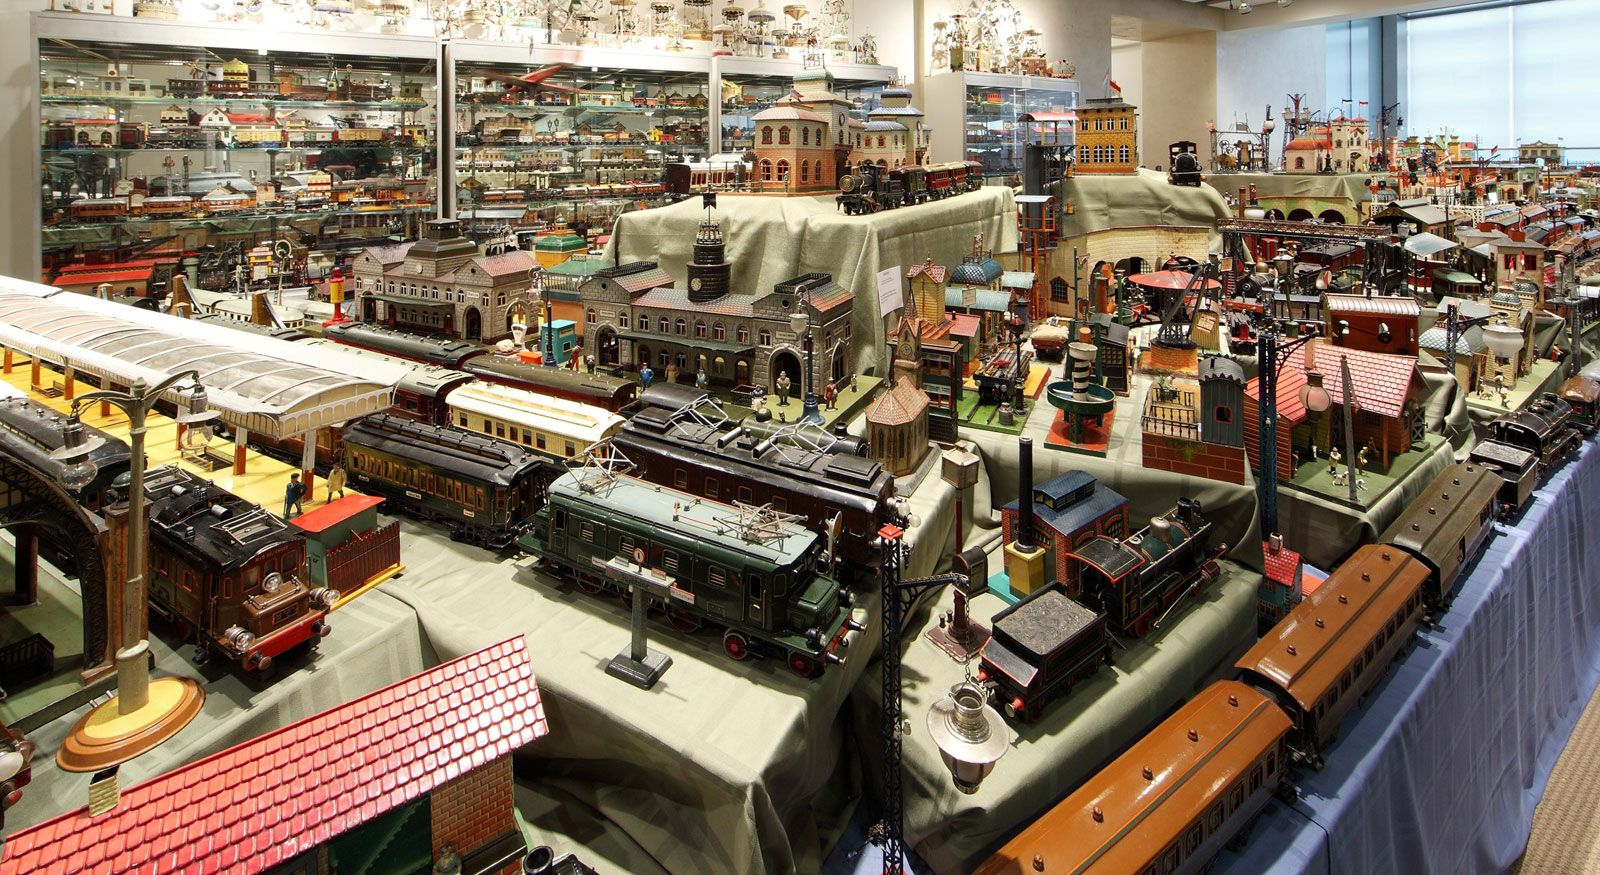 The World's Greatest Toy and Train Collection Reaches